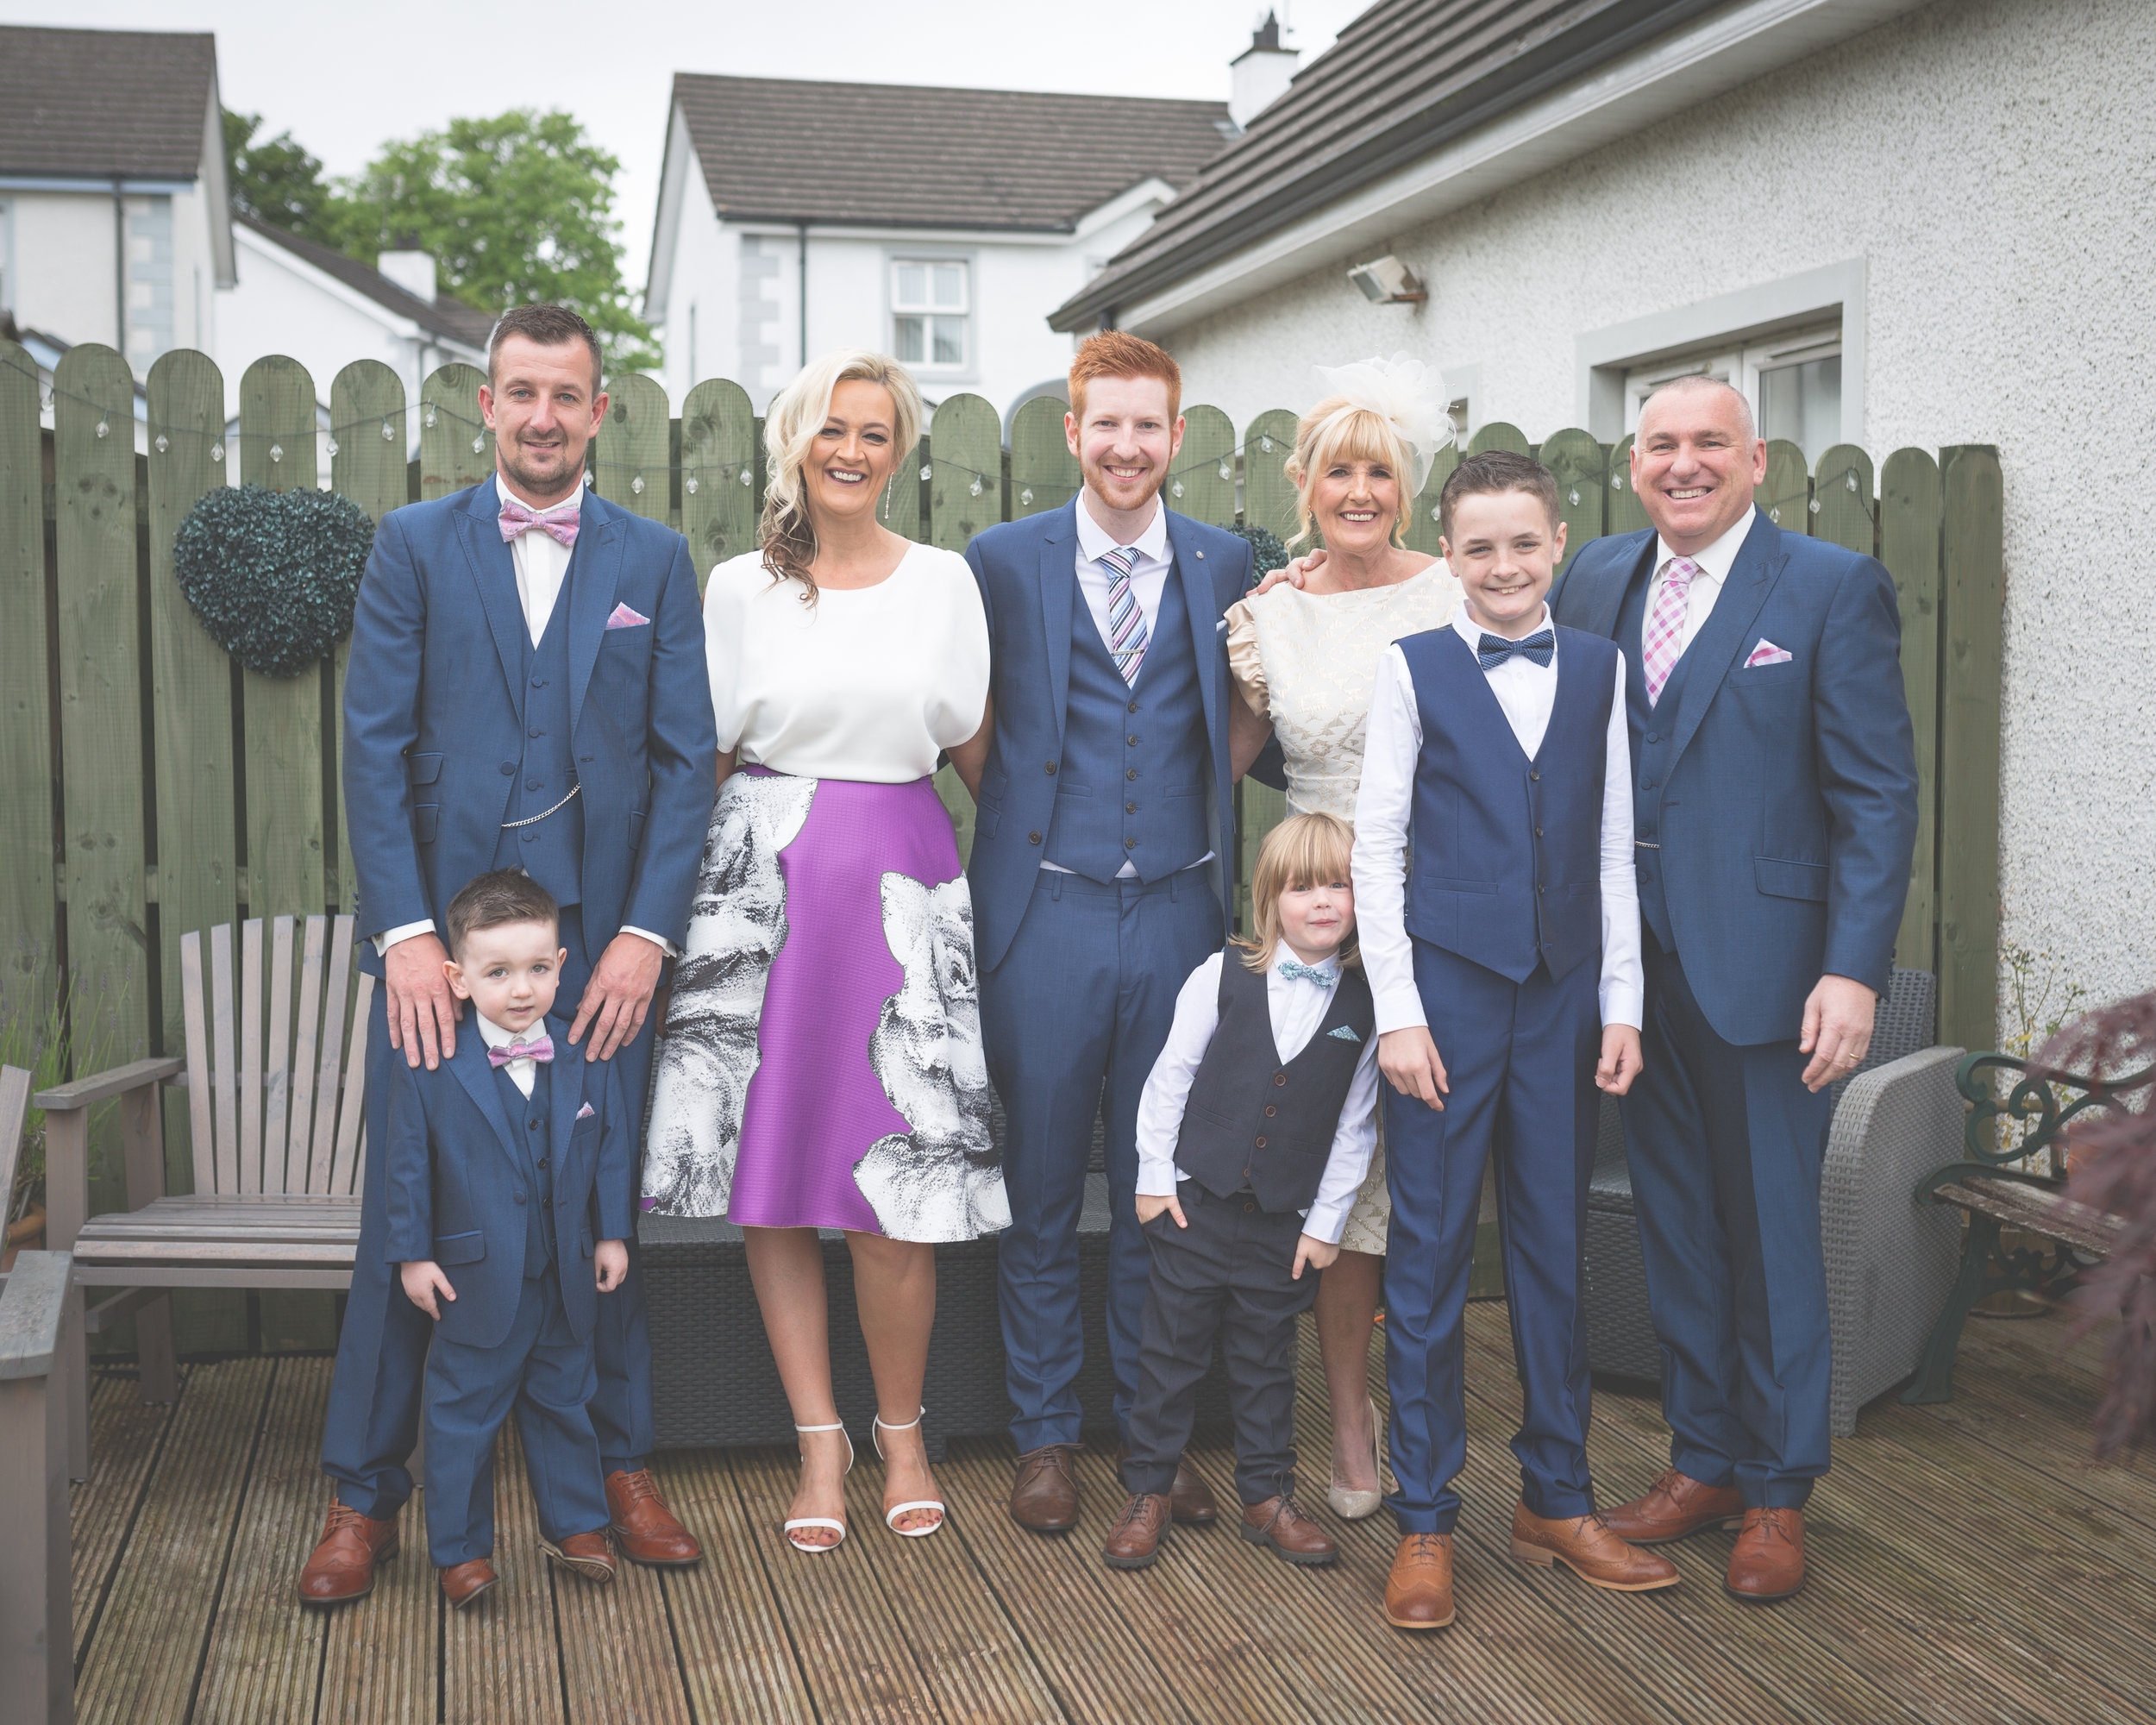 Antoinette & Stephen - Groom & Groomsmen | Brian McEwan Photography | Wedding Photographer Northern Ireland 60.jpg